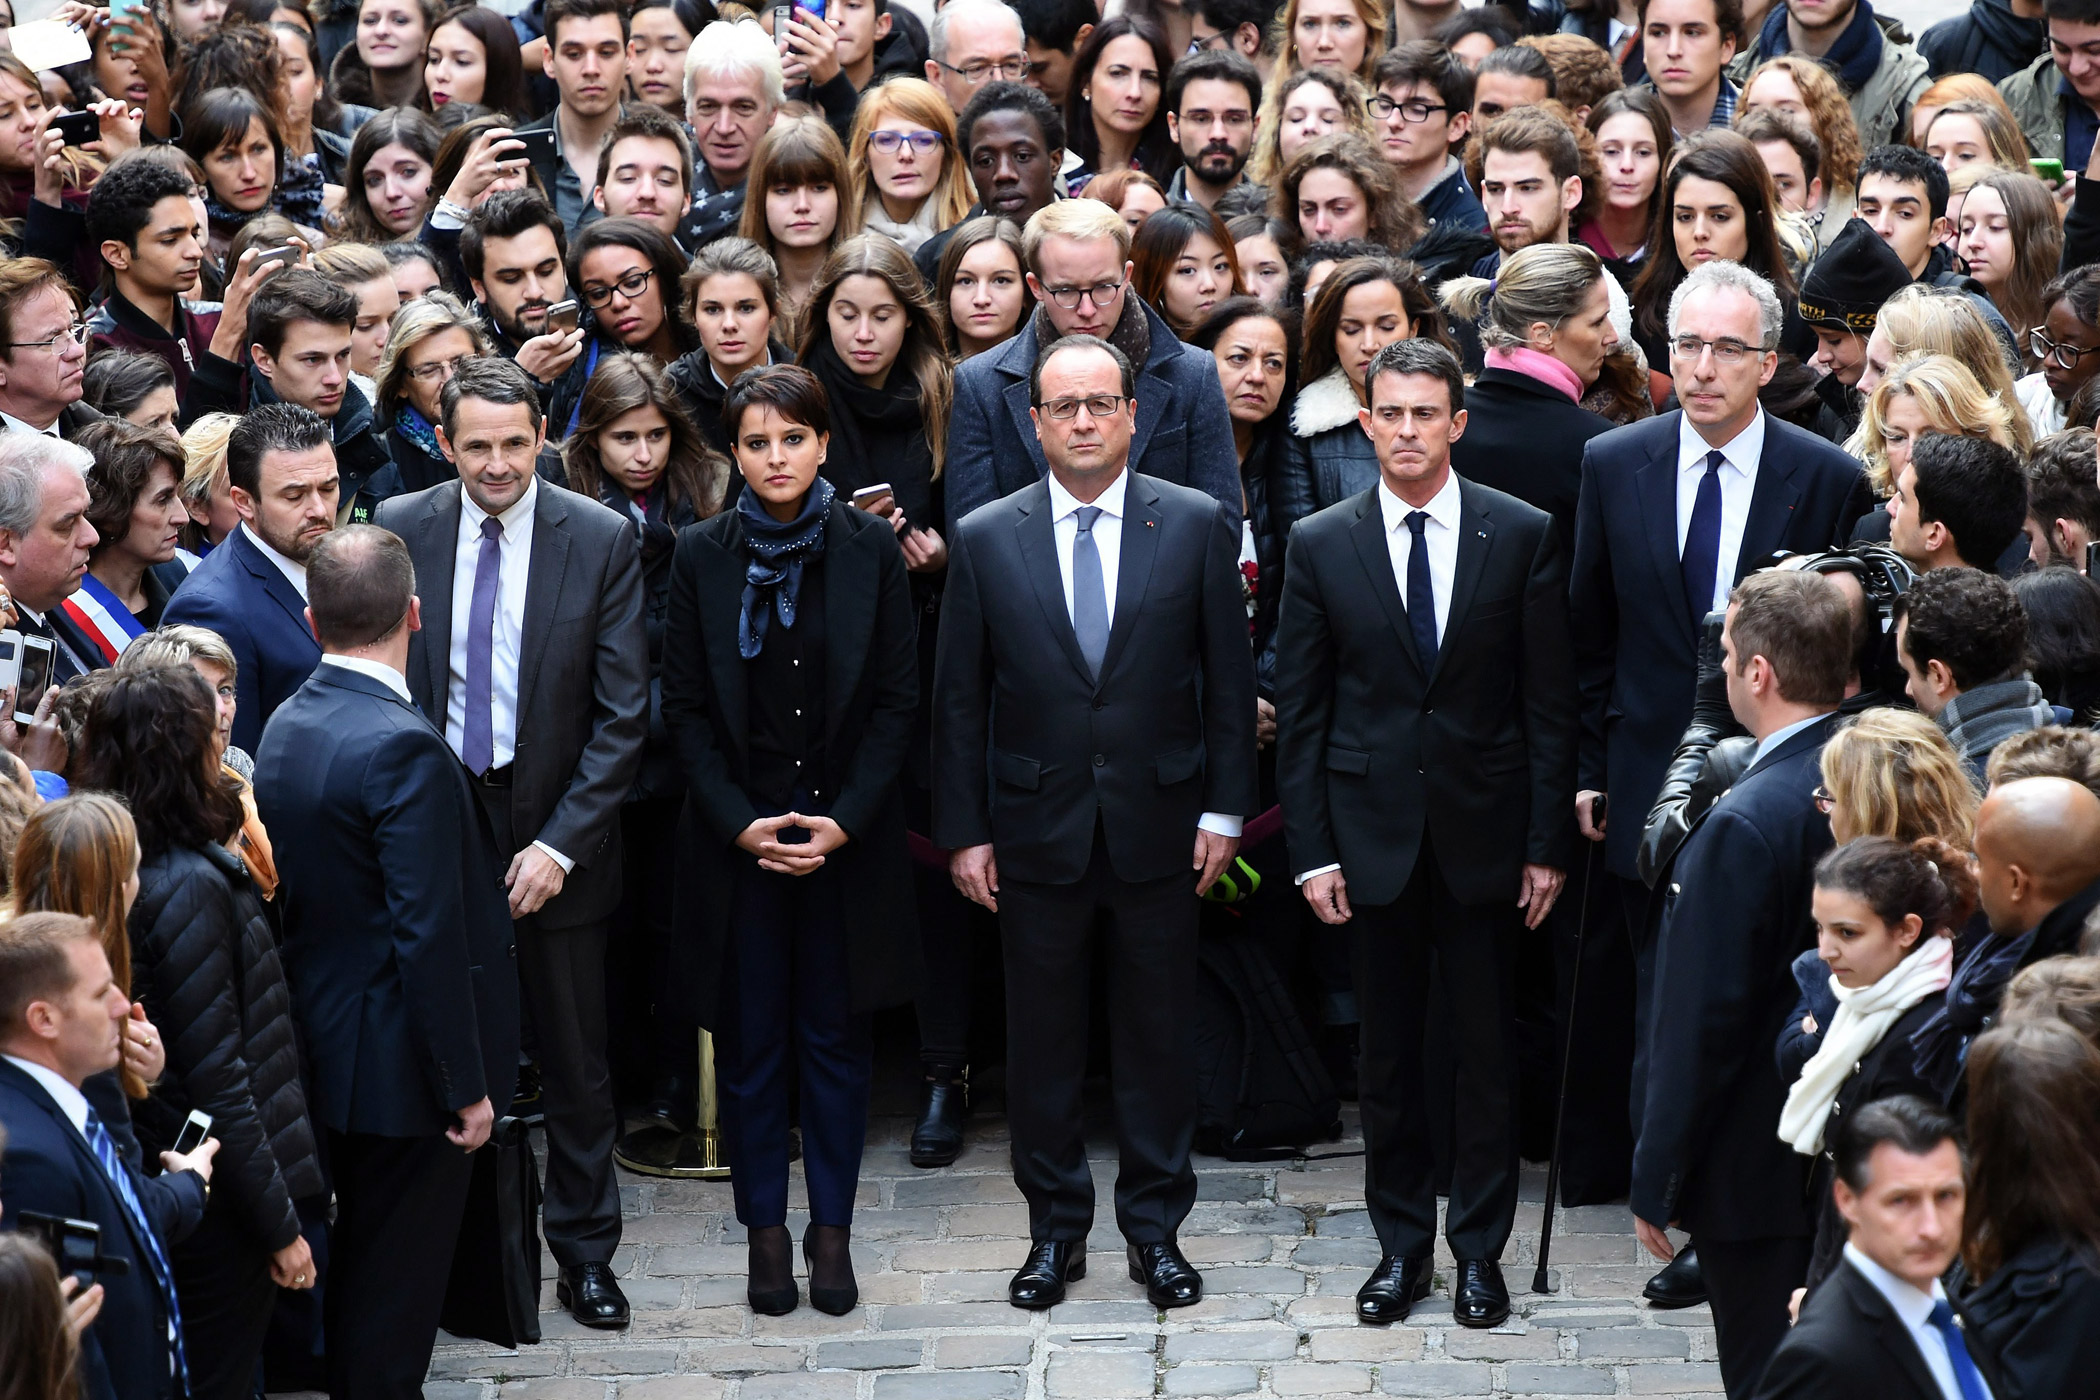 French President Francois Hollande, center, observes a minute of silence for the victims of the Nov. 13 attacks on Paris at the Sorbonne University on Nov. 16, 2015.  French Minister for Higher Education and Research Thierry Mandon, center left, French Education Minister Najat Vallaud-Belkacem, and French Prime Minister Manuel Vallse join Hollande.